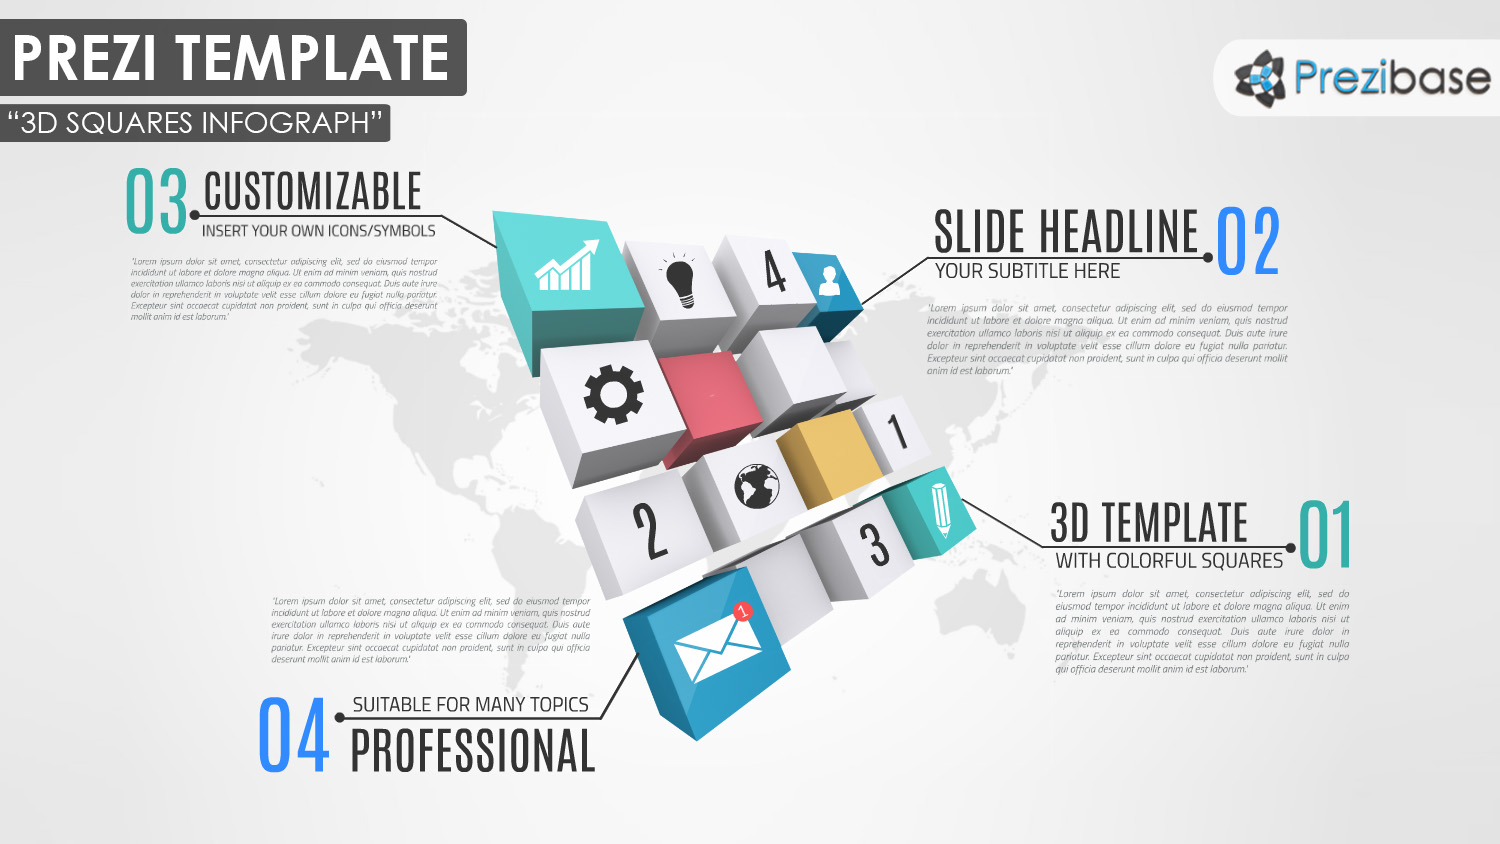 3D Squares cubes world map business prezi template